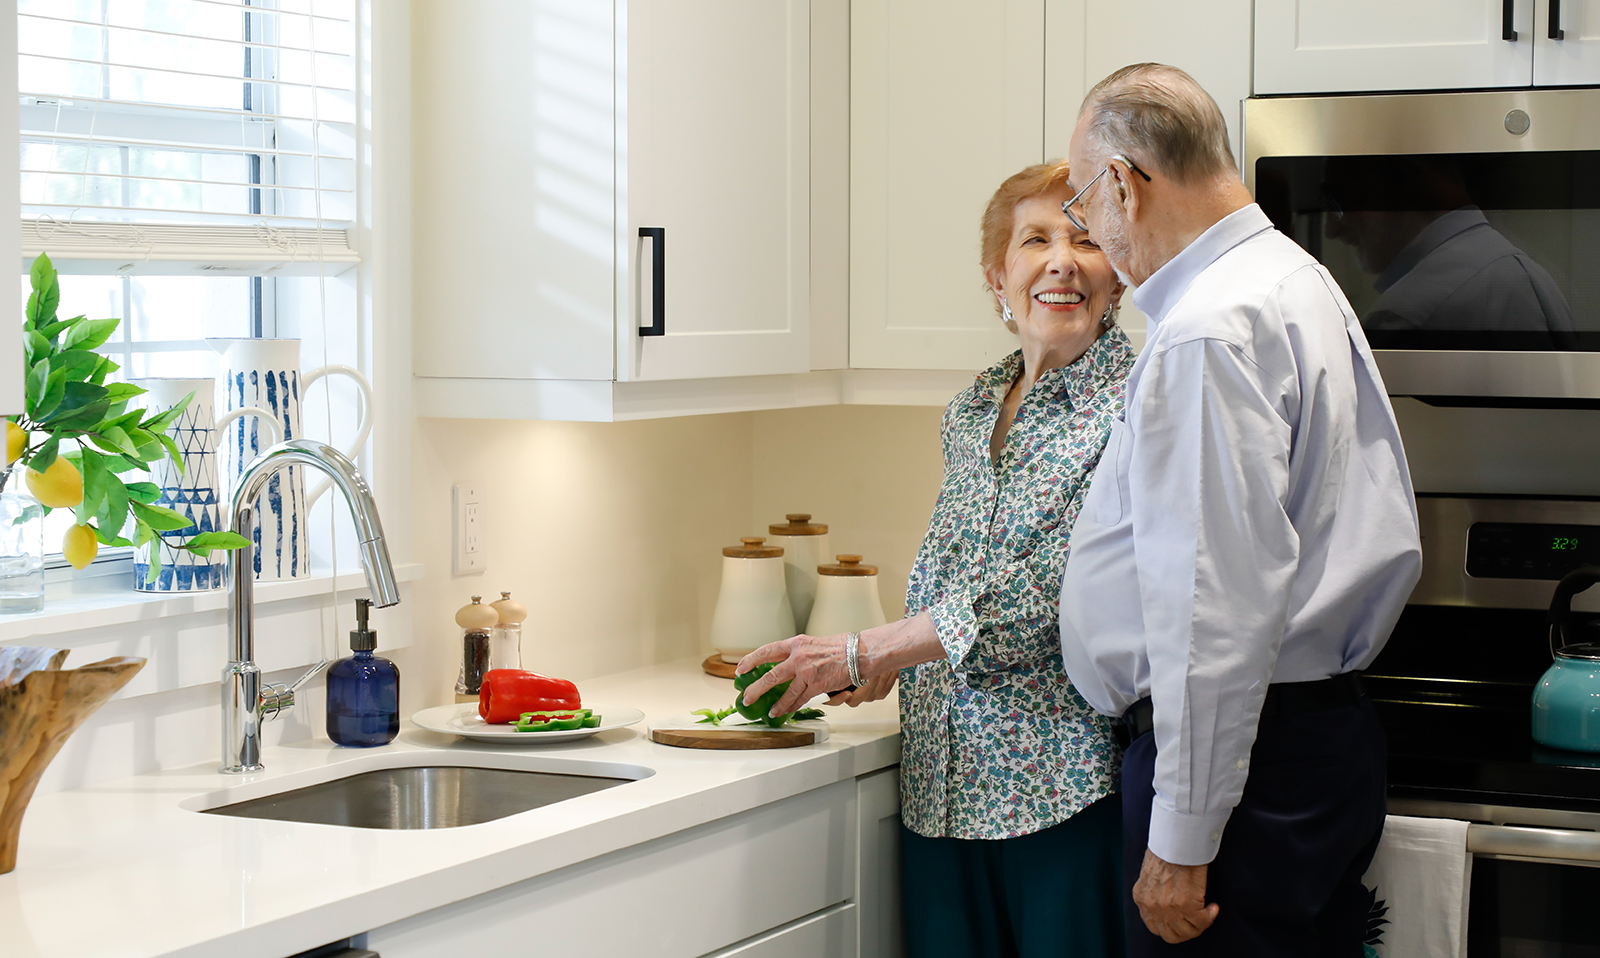 couple standing by sink in kitchen